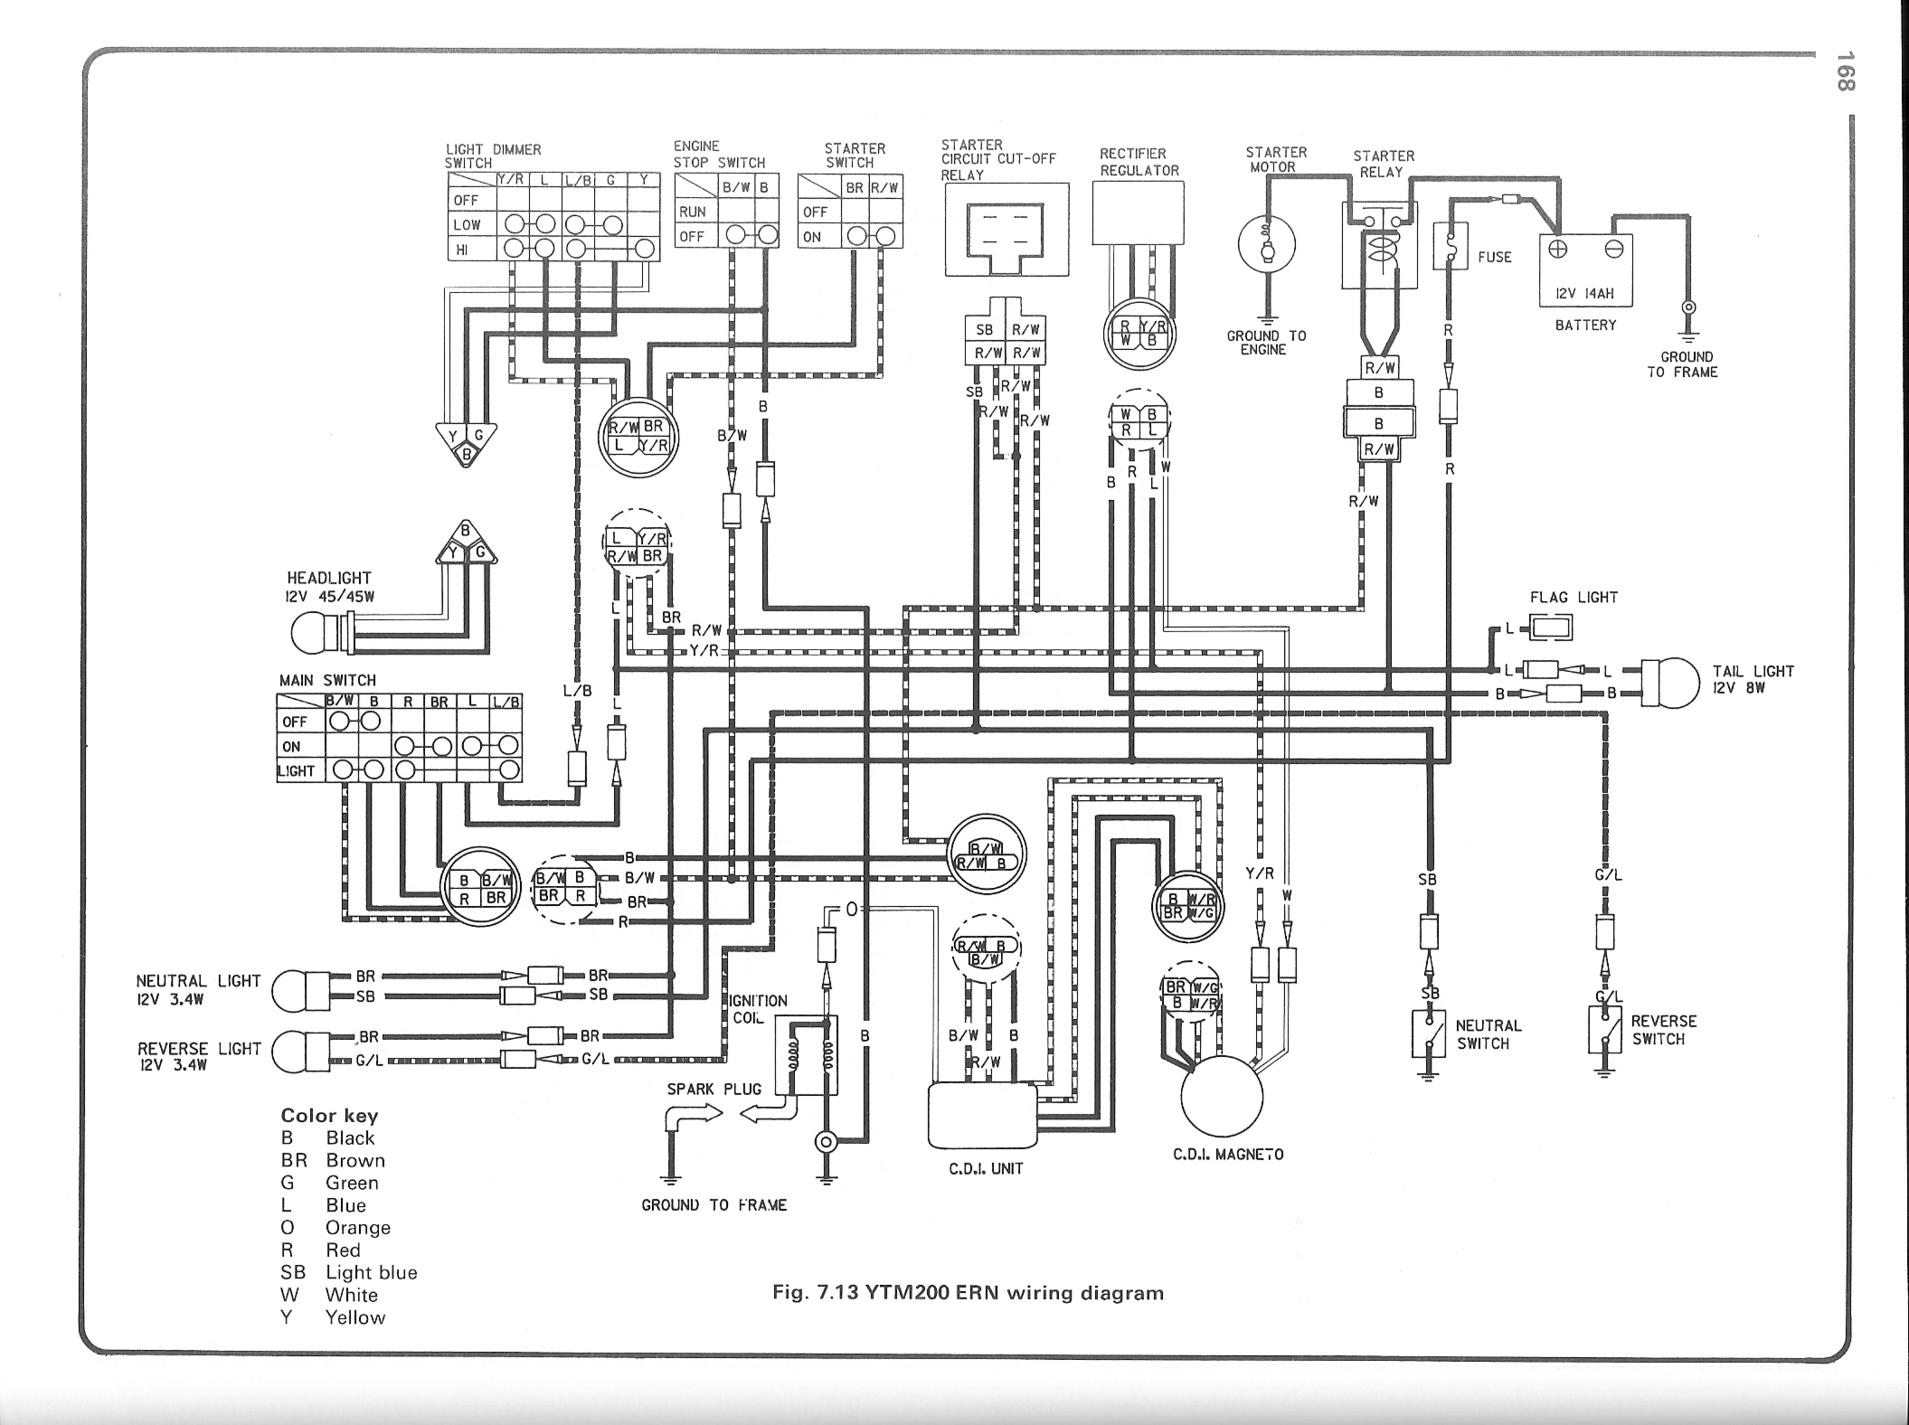 [DIAGRAM] 2003 Yamaha Kodiak Wiring Diagram FULL Version